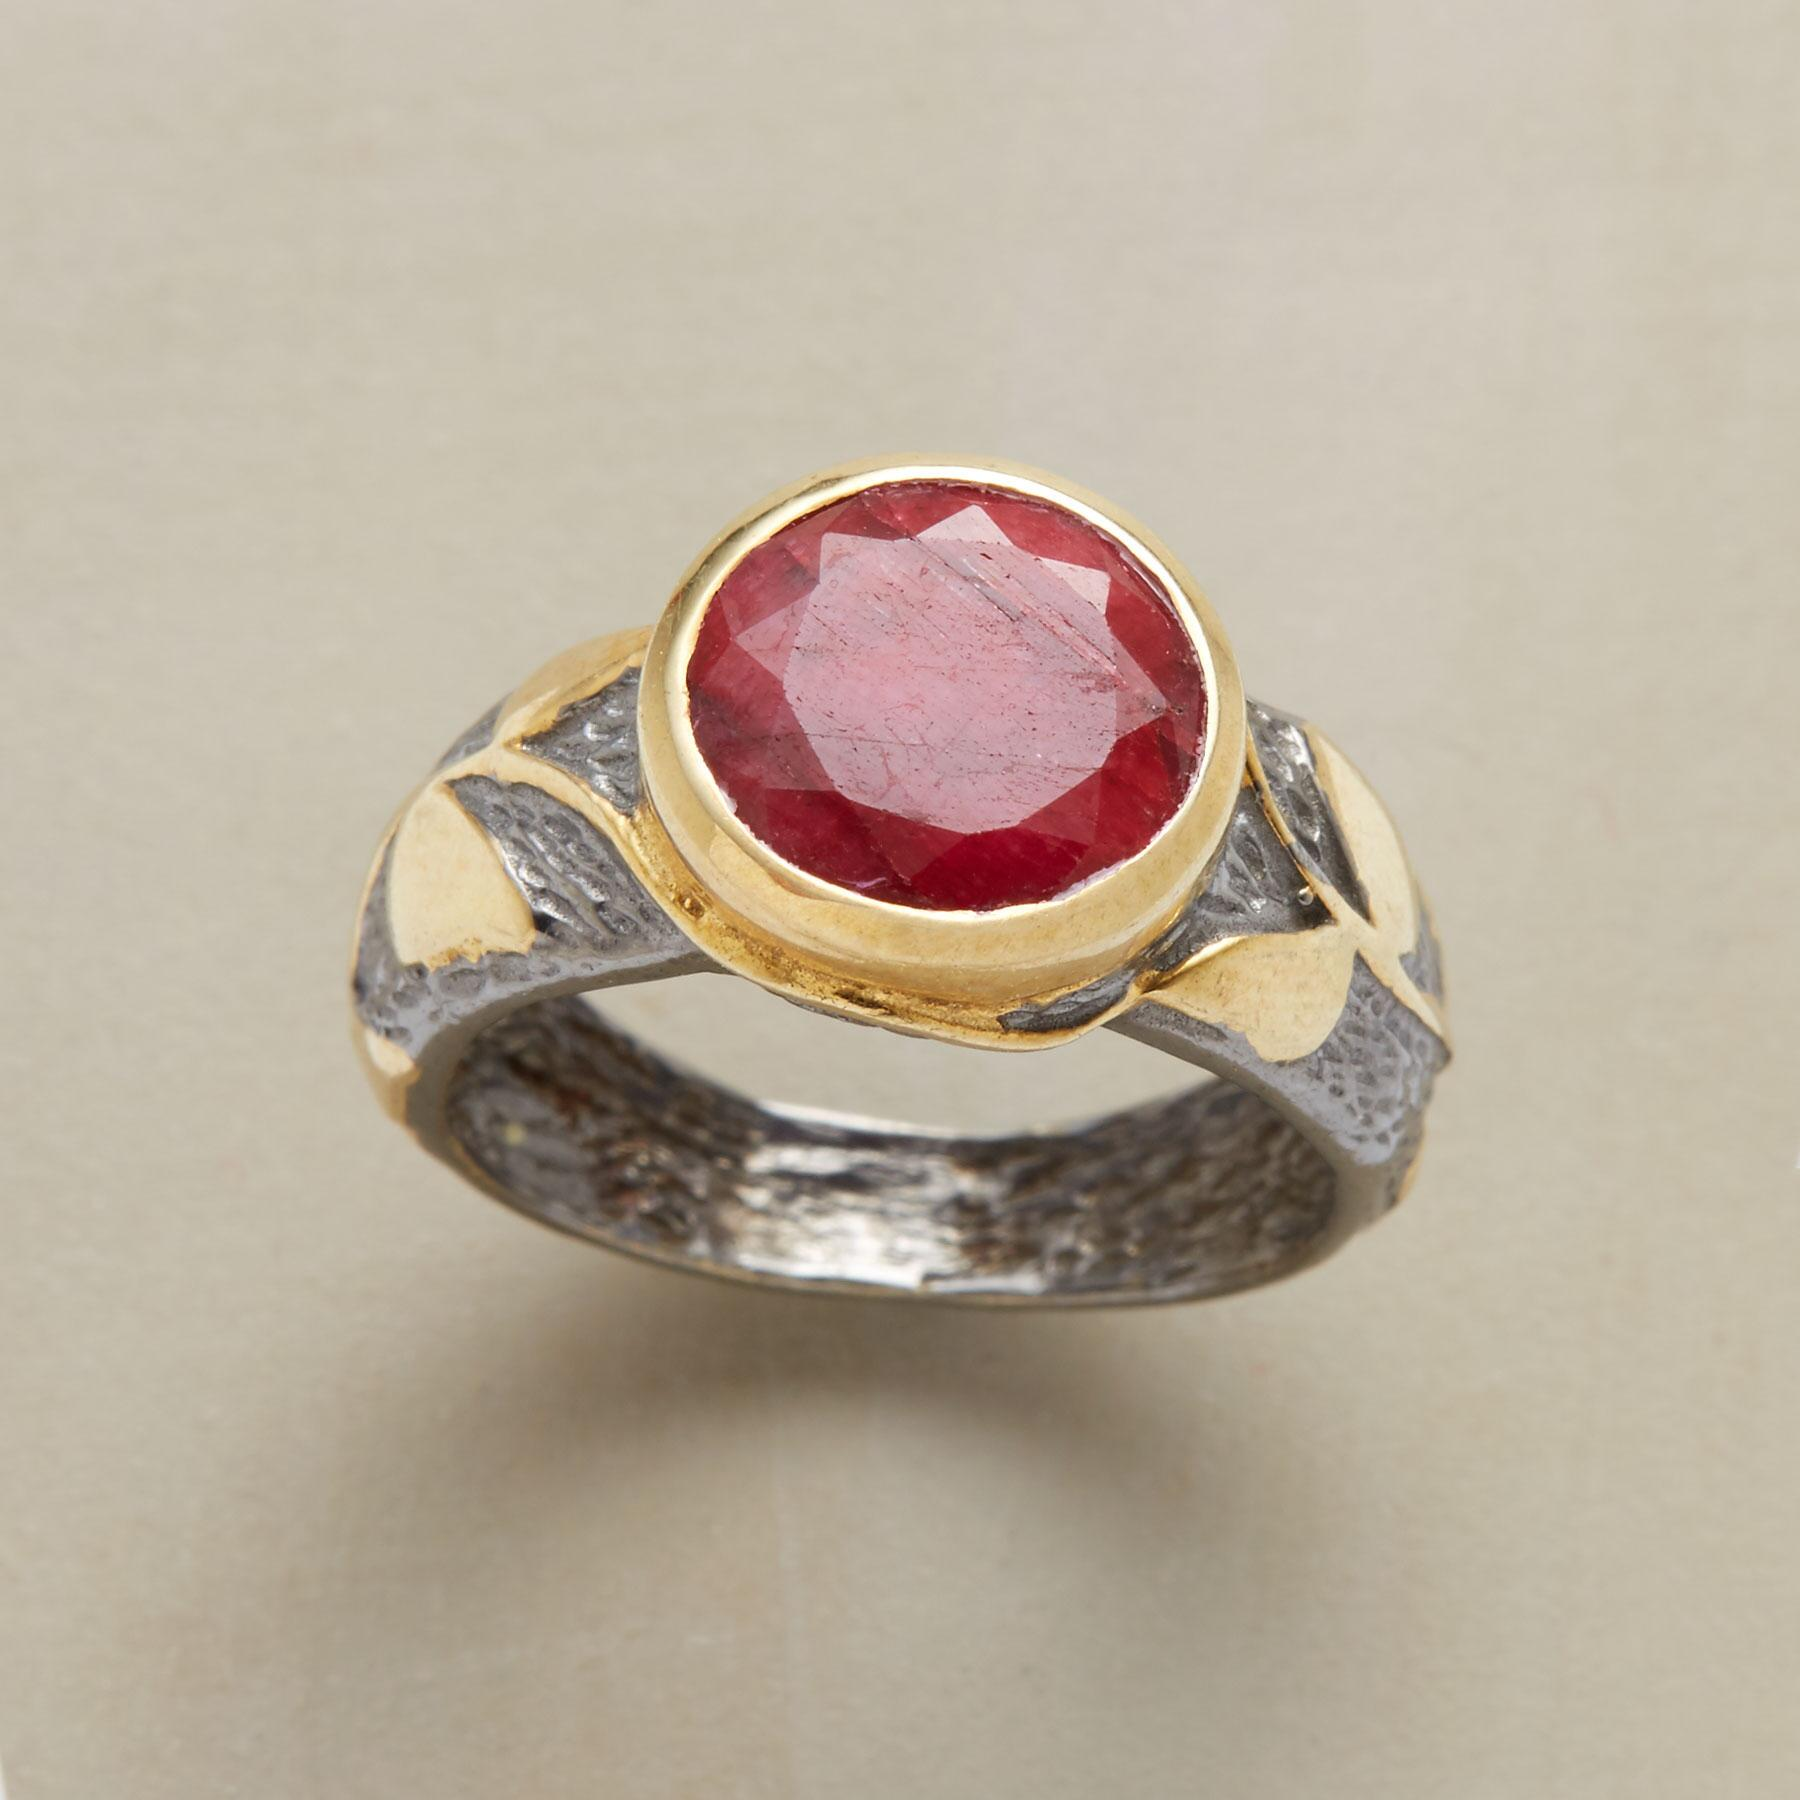 CHERRY PICKED RING: View 1